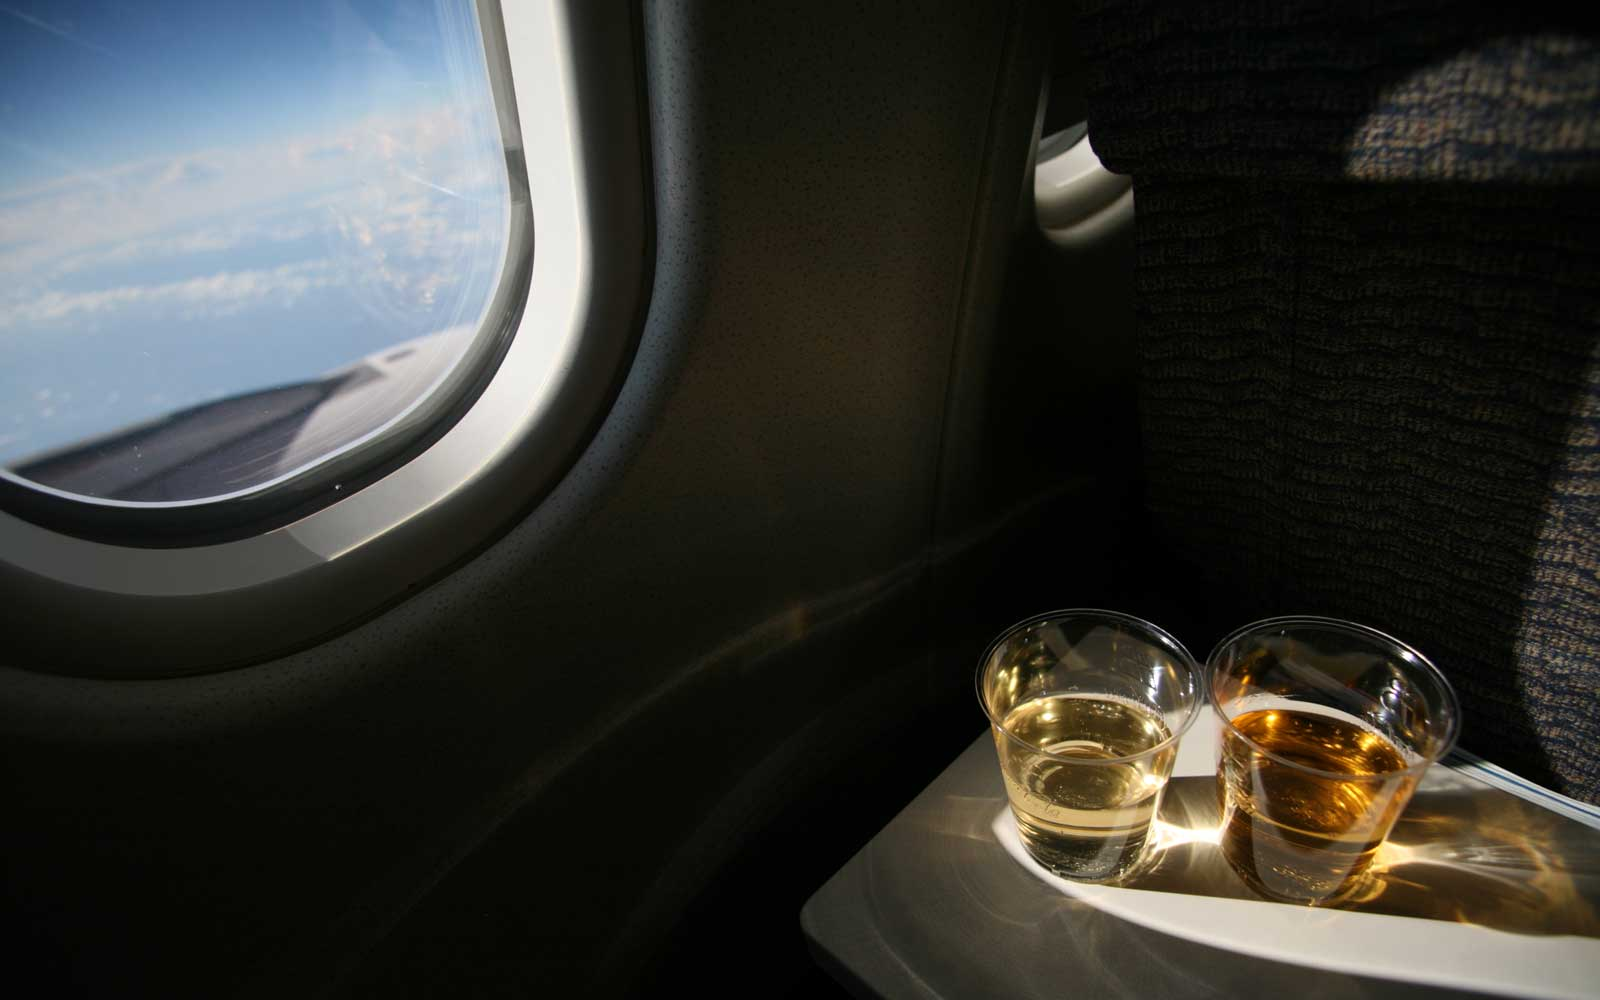 Another U.S. Airline is Raising Drink Prices on Flights